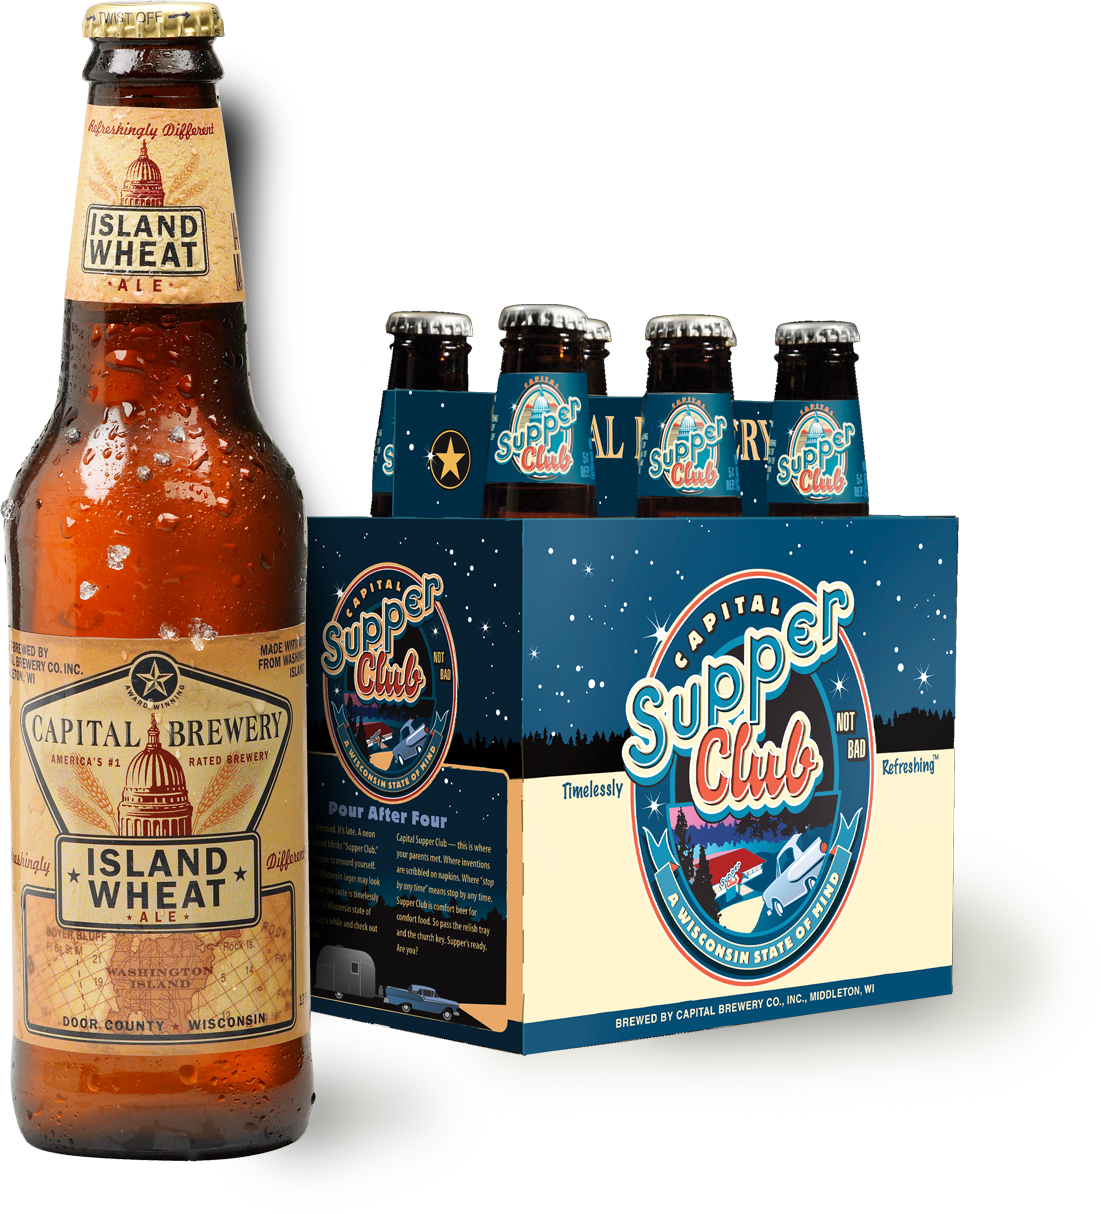 Capital Brewery Supper Club six-pack and Island Wheat bottle